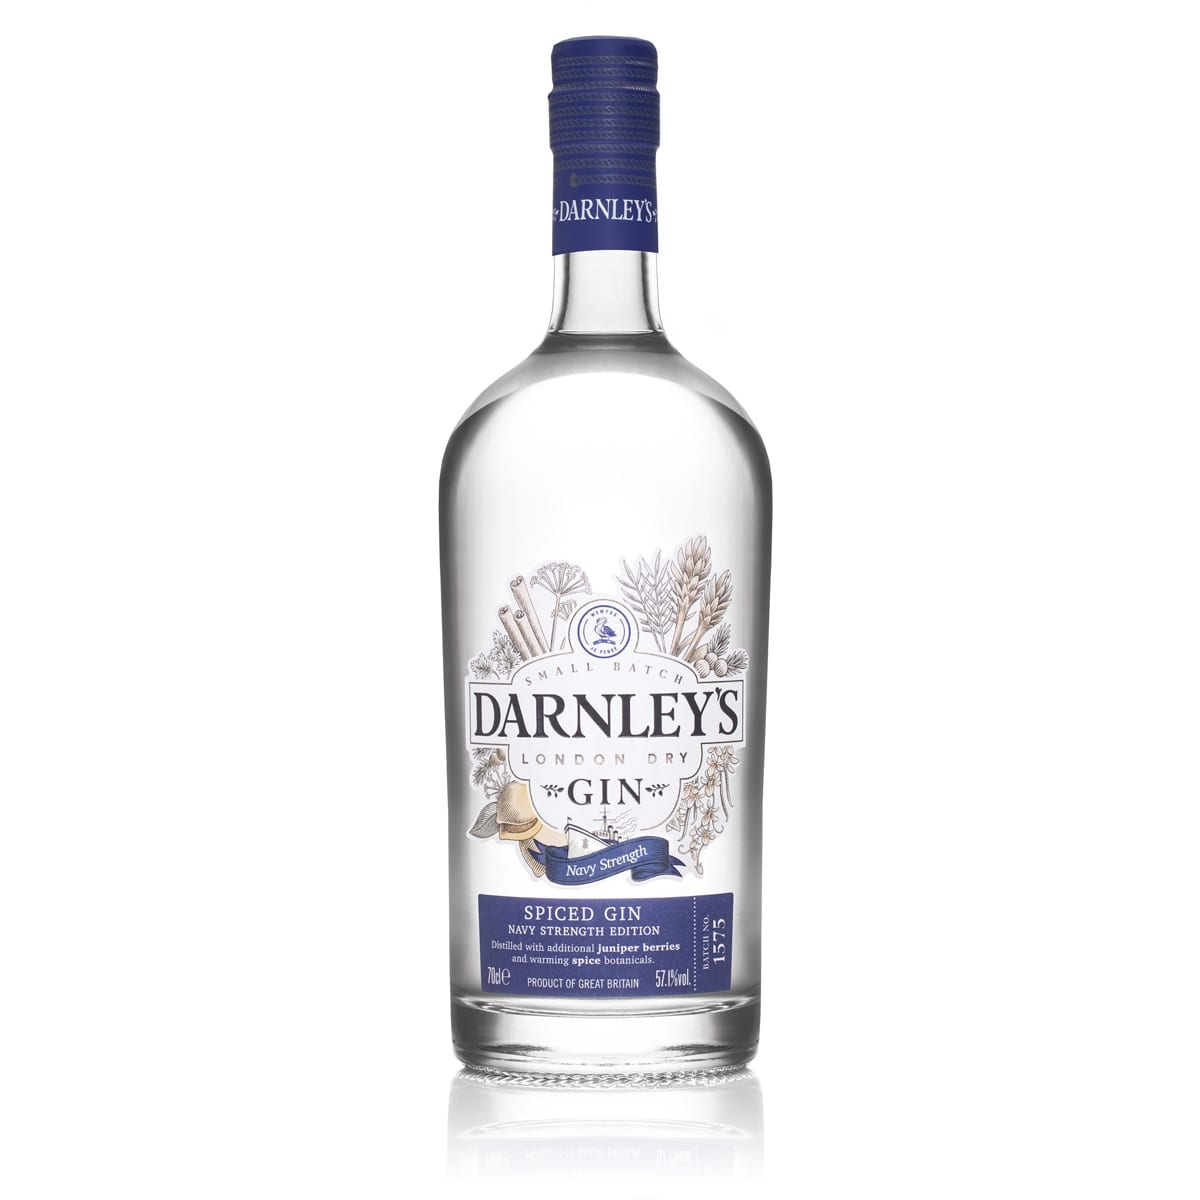 Darnley's Spiced Gin: Navy Strength Edition